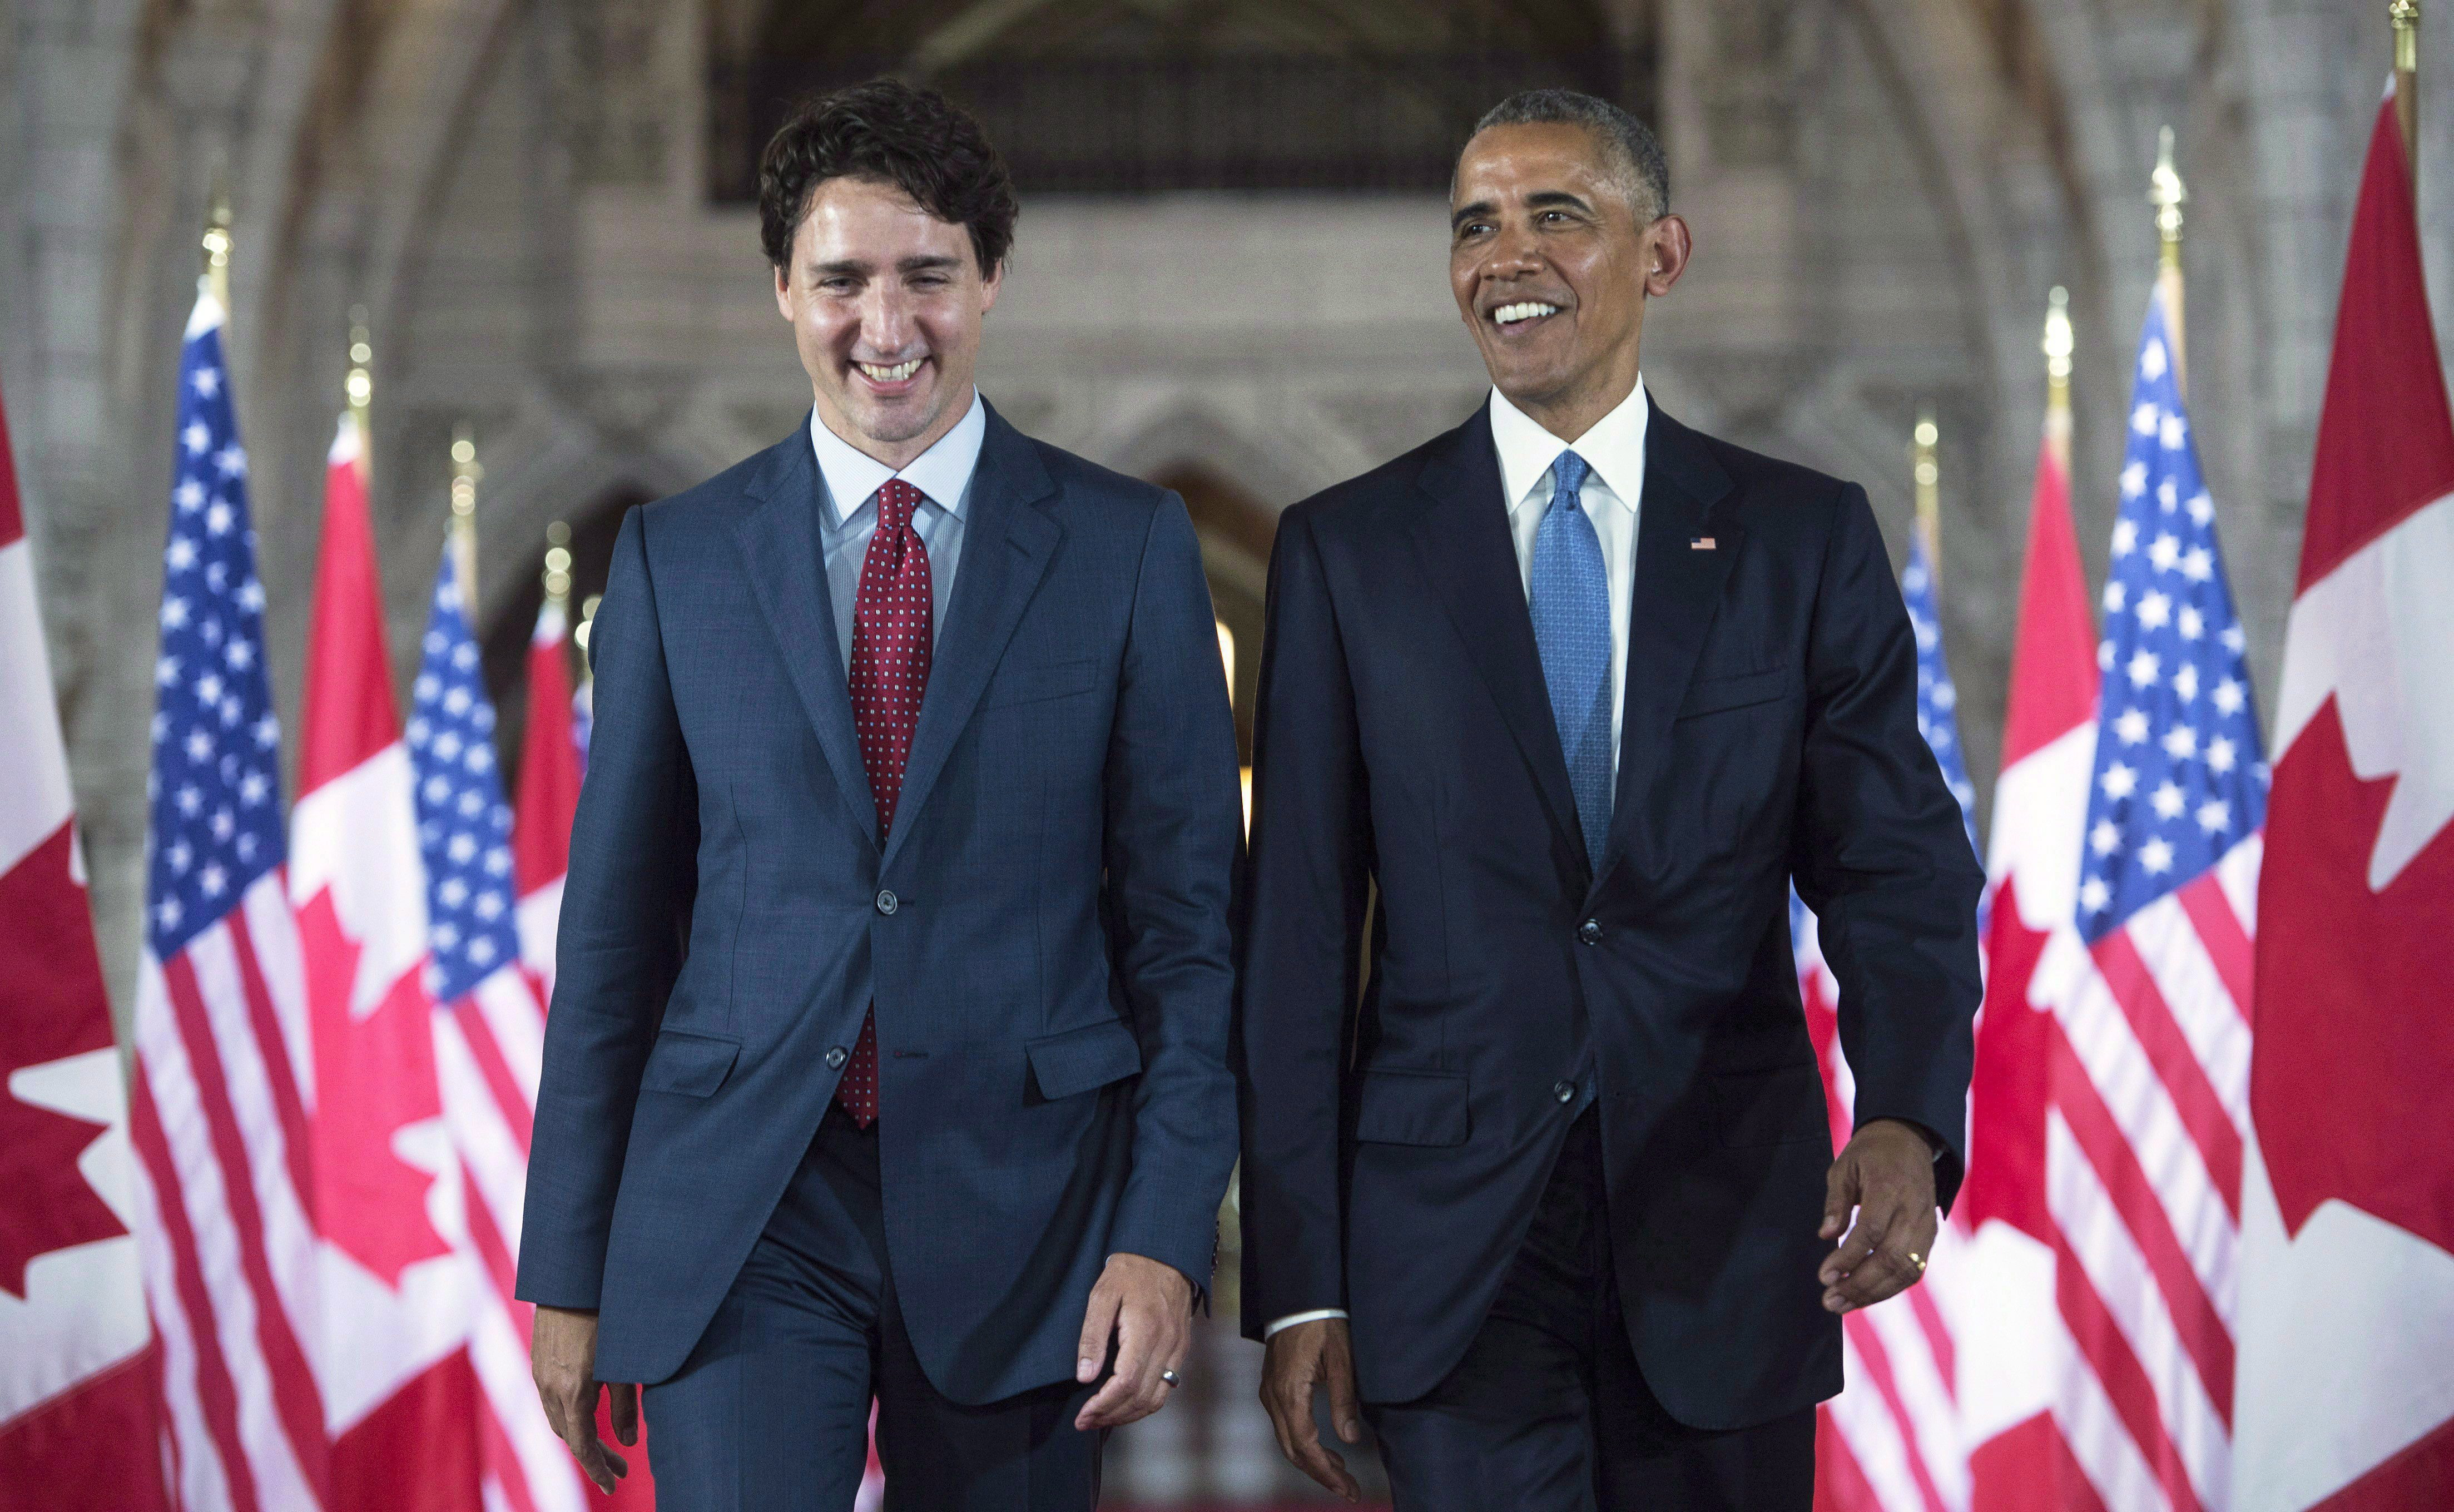 Obama tweets support for Trudeau in re-election campaign